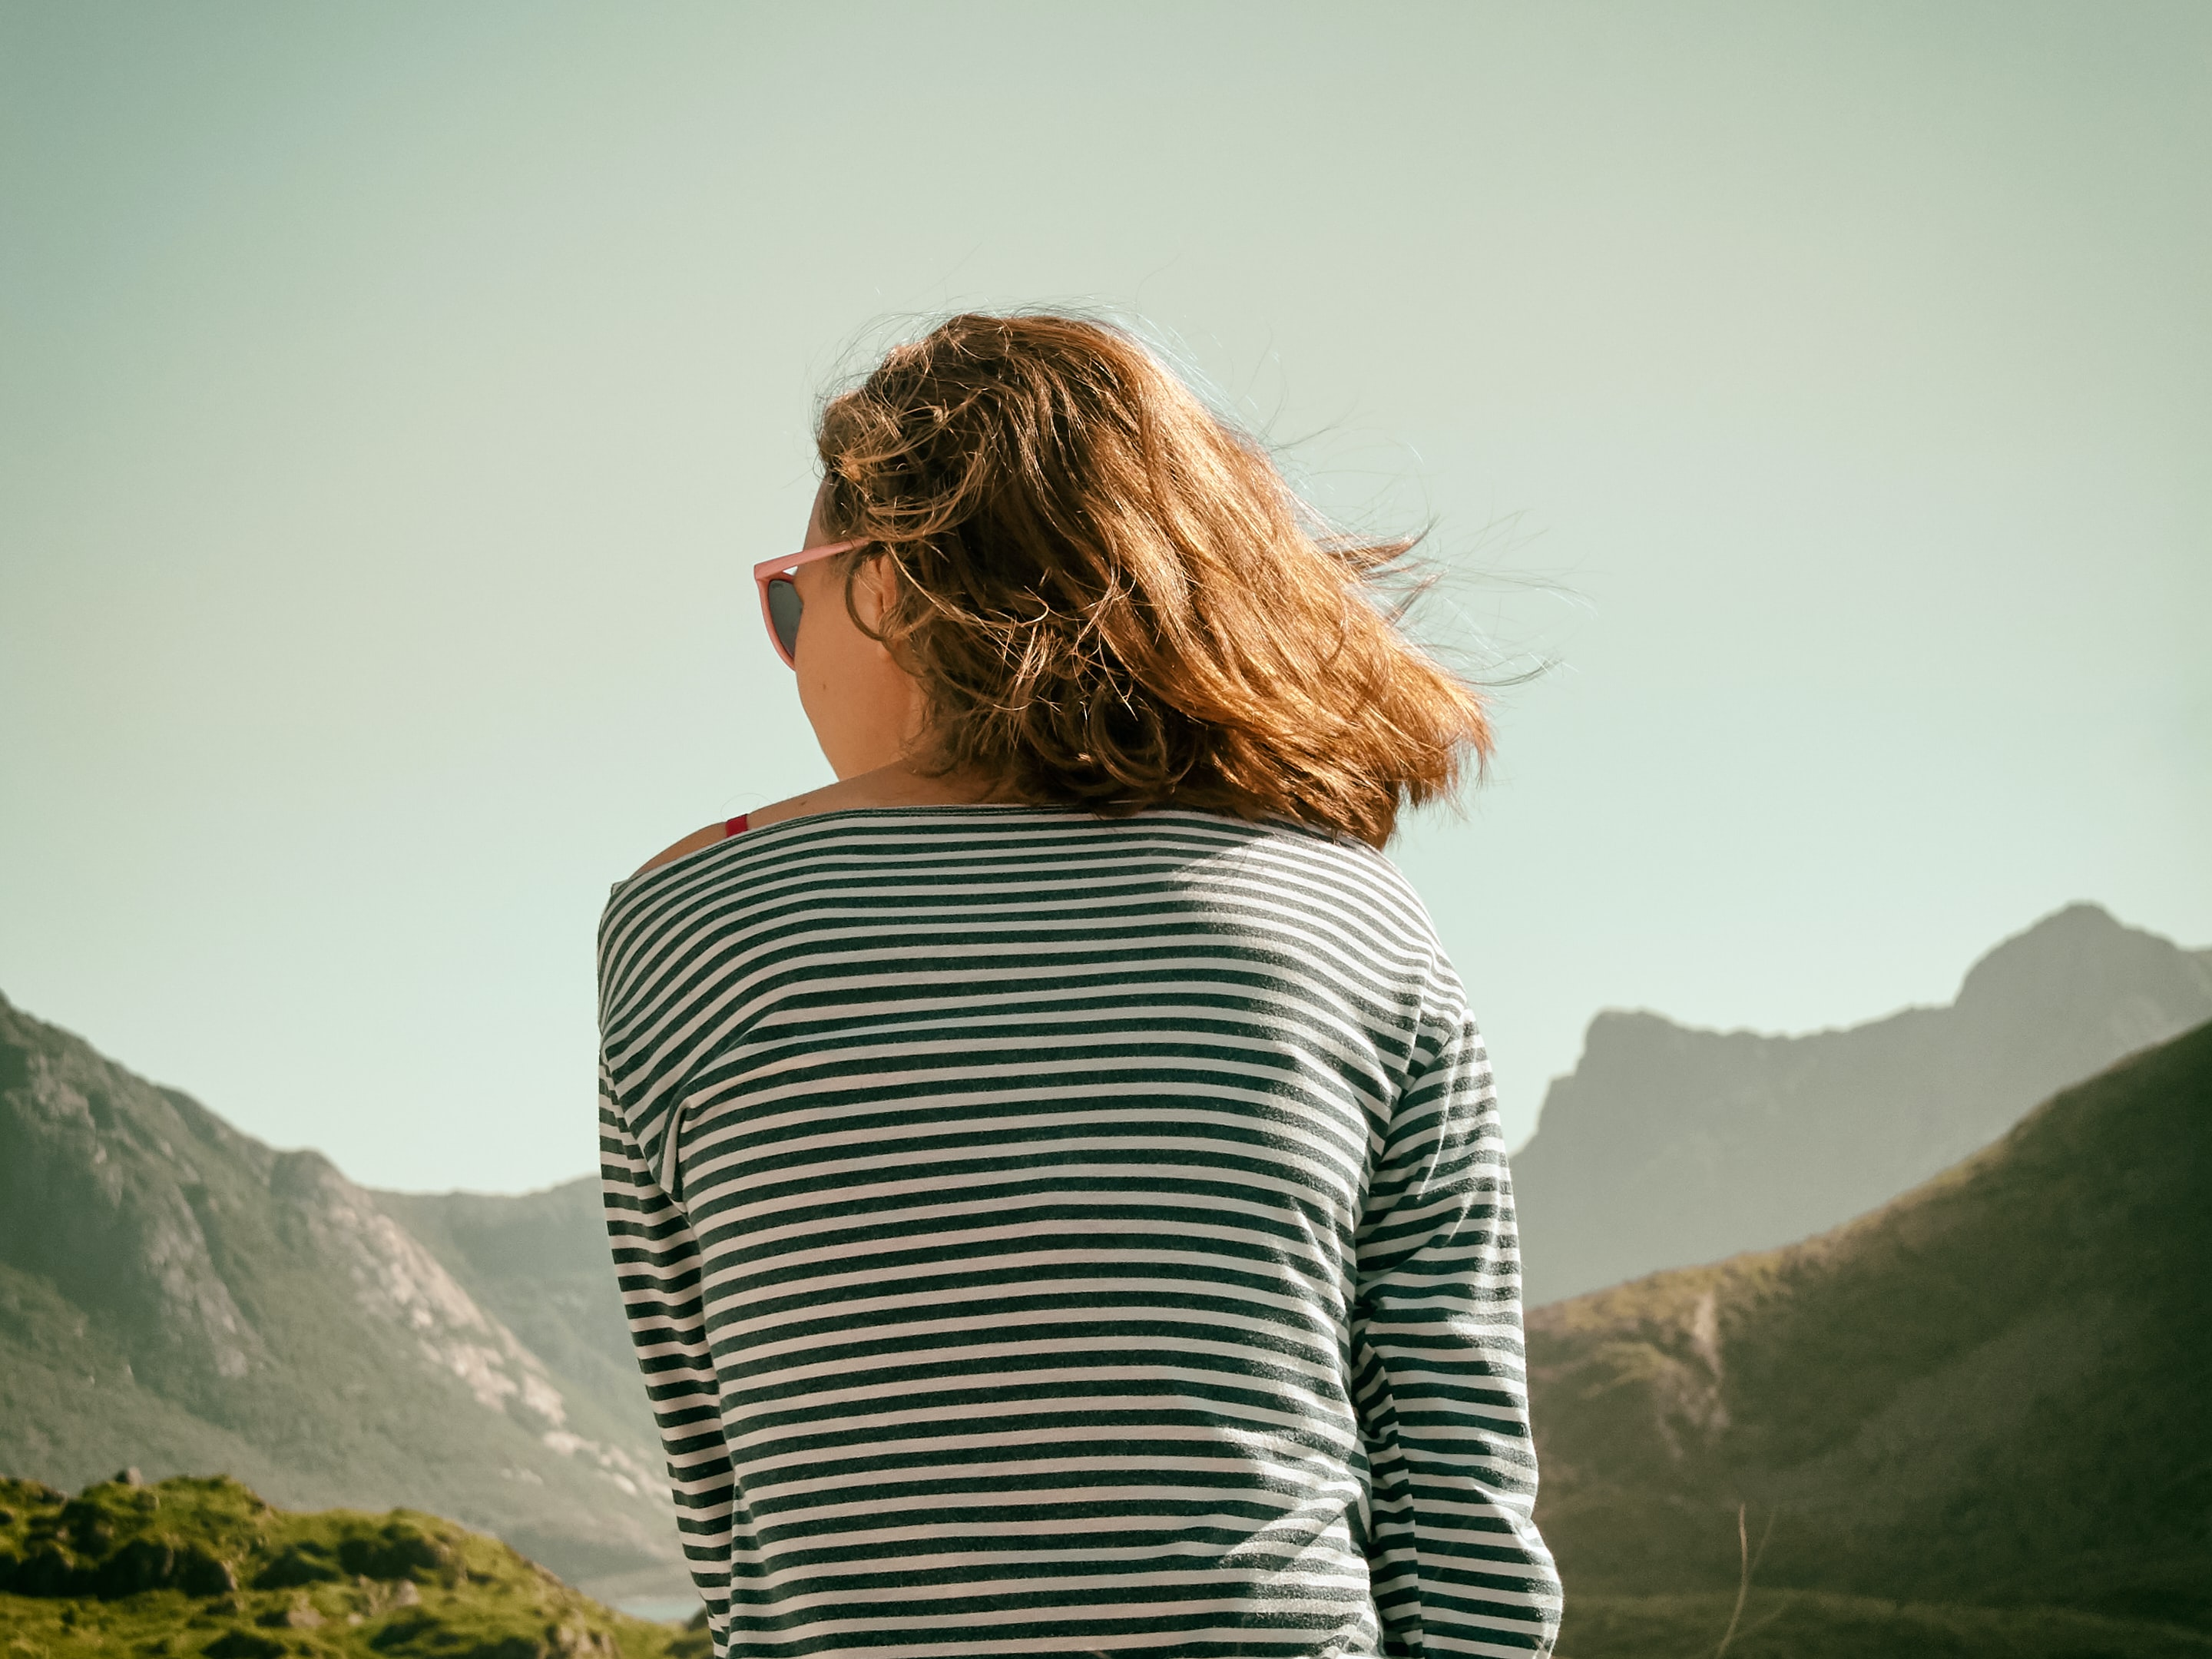 woman with sunglasses sitting on mountain during daytime